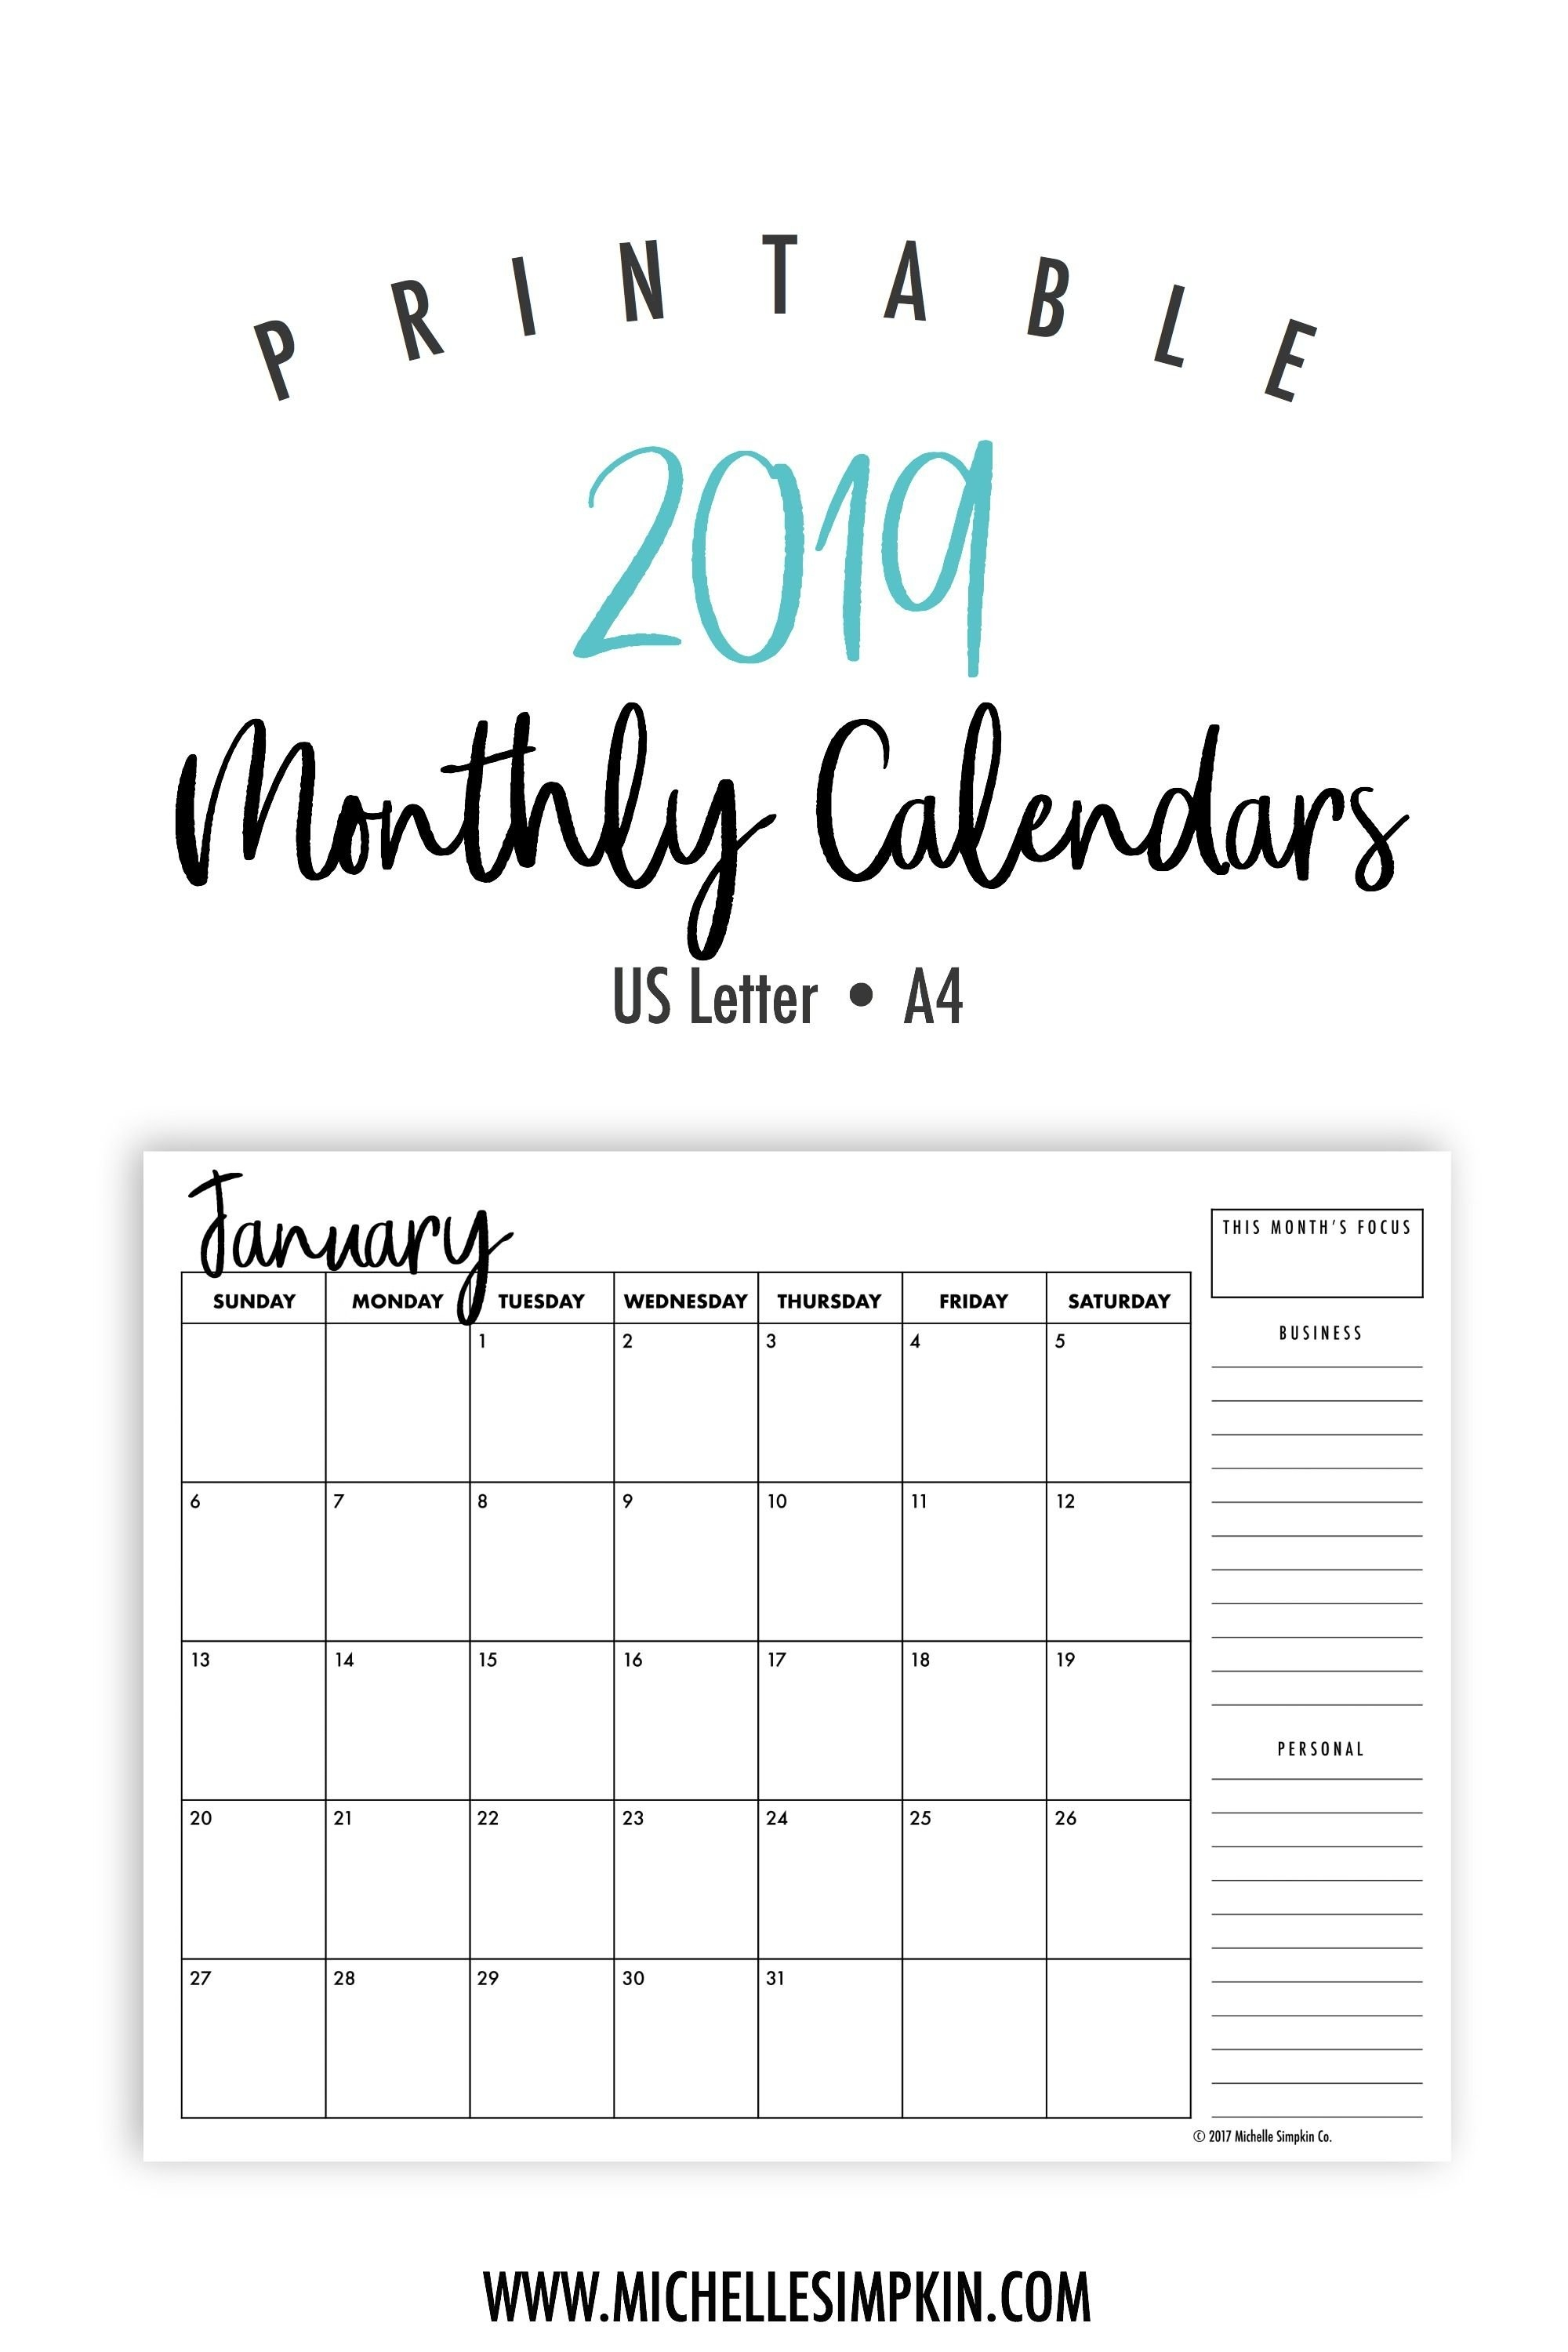 2019 Printable Calendars - Plan Out Next Year With These Ink Calendar 2019 For Print